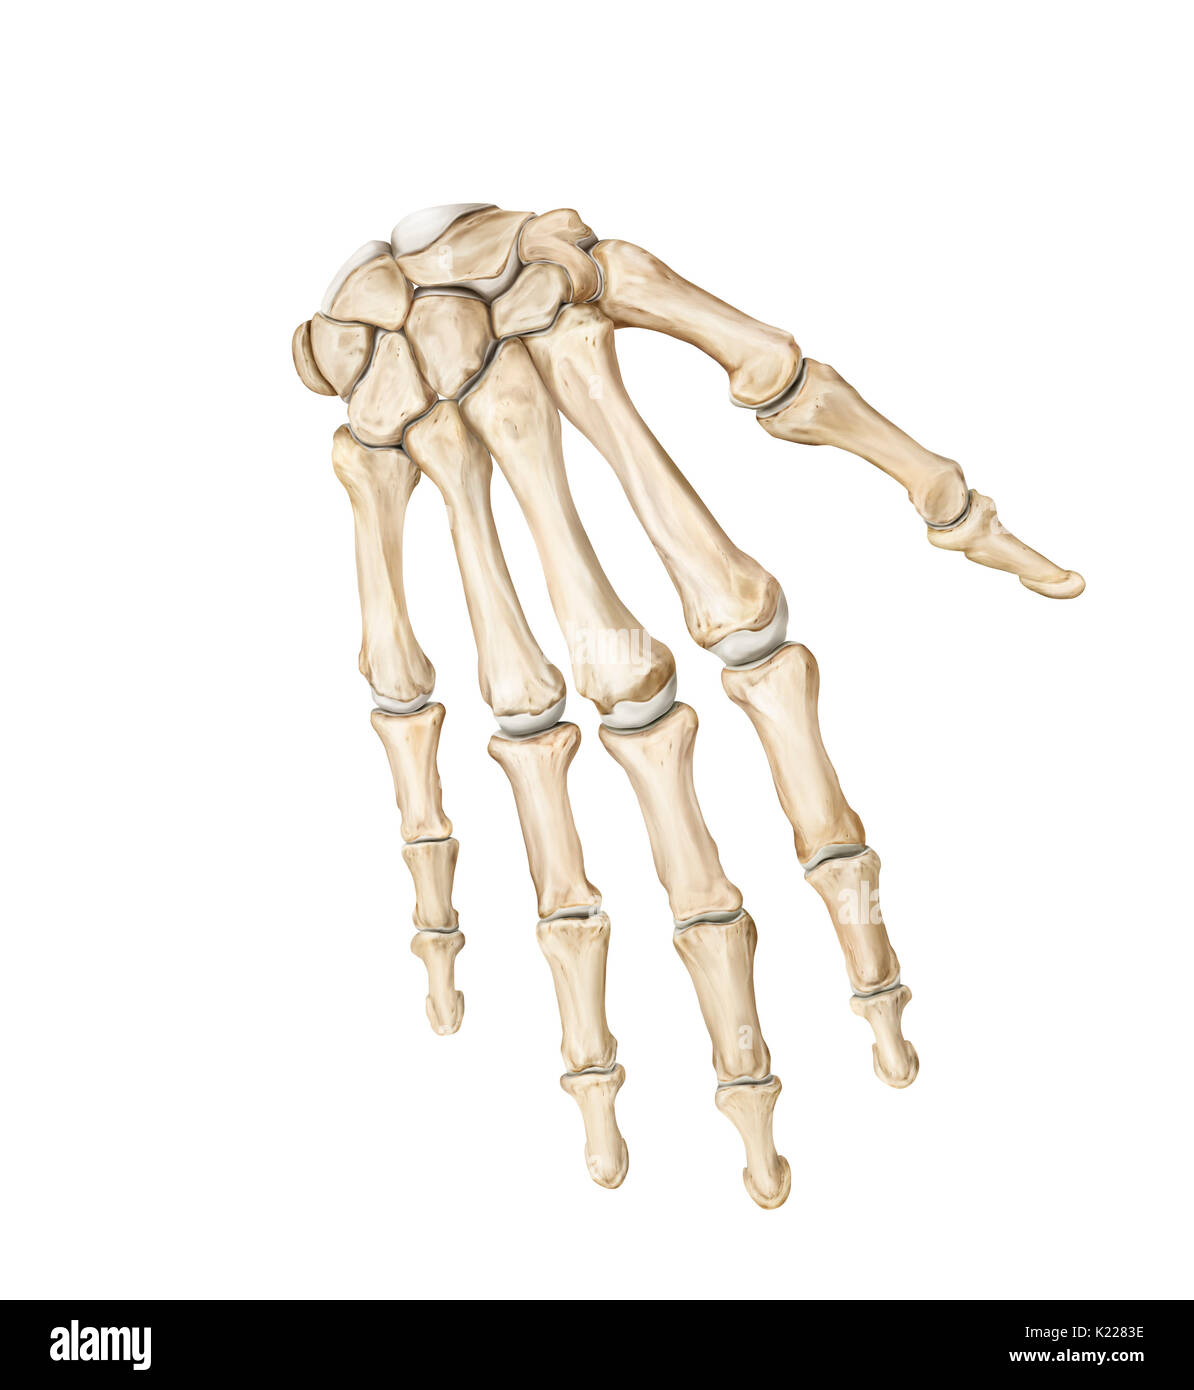 Bones Upper Body Cut Out Stock Images & Pictures - Alamy